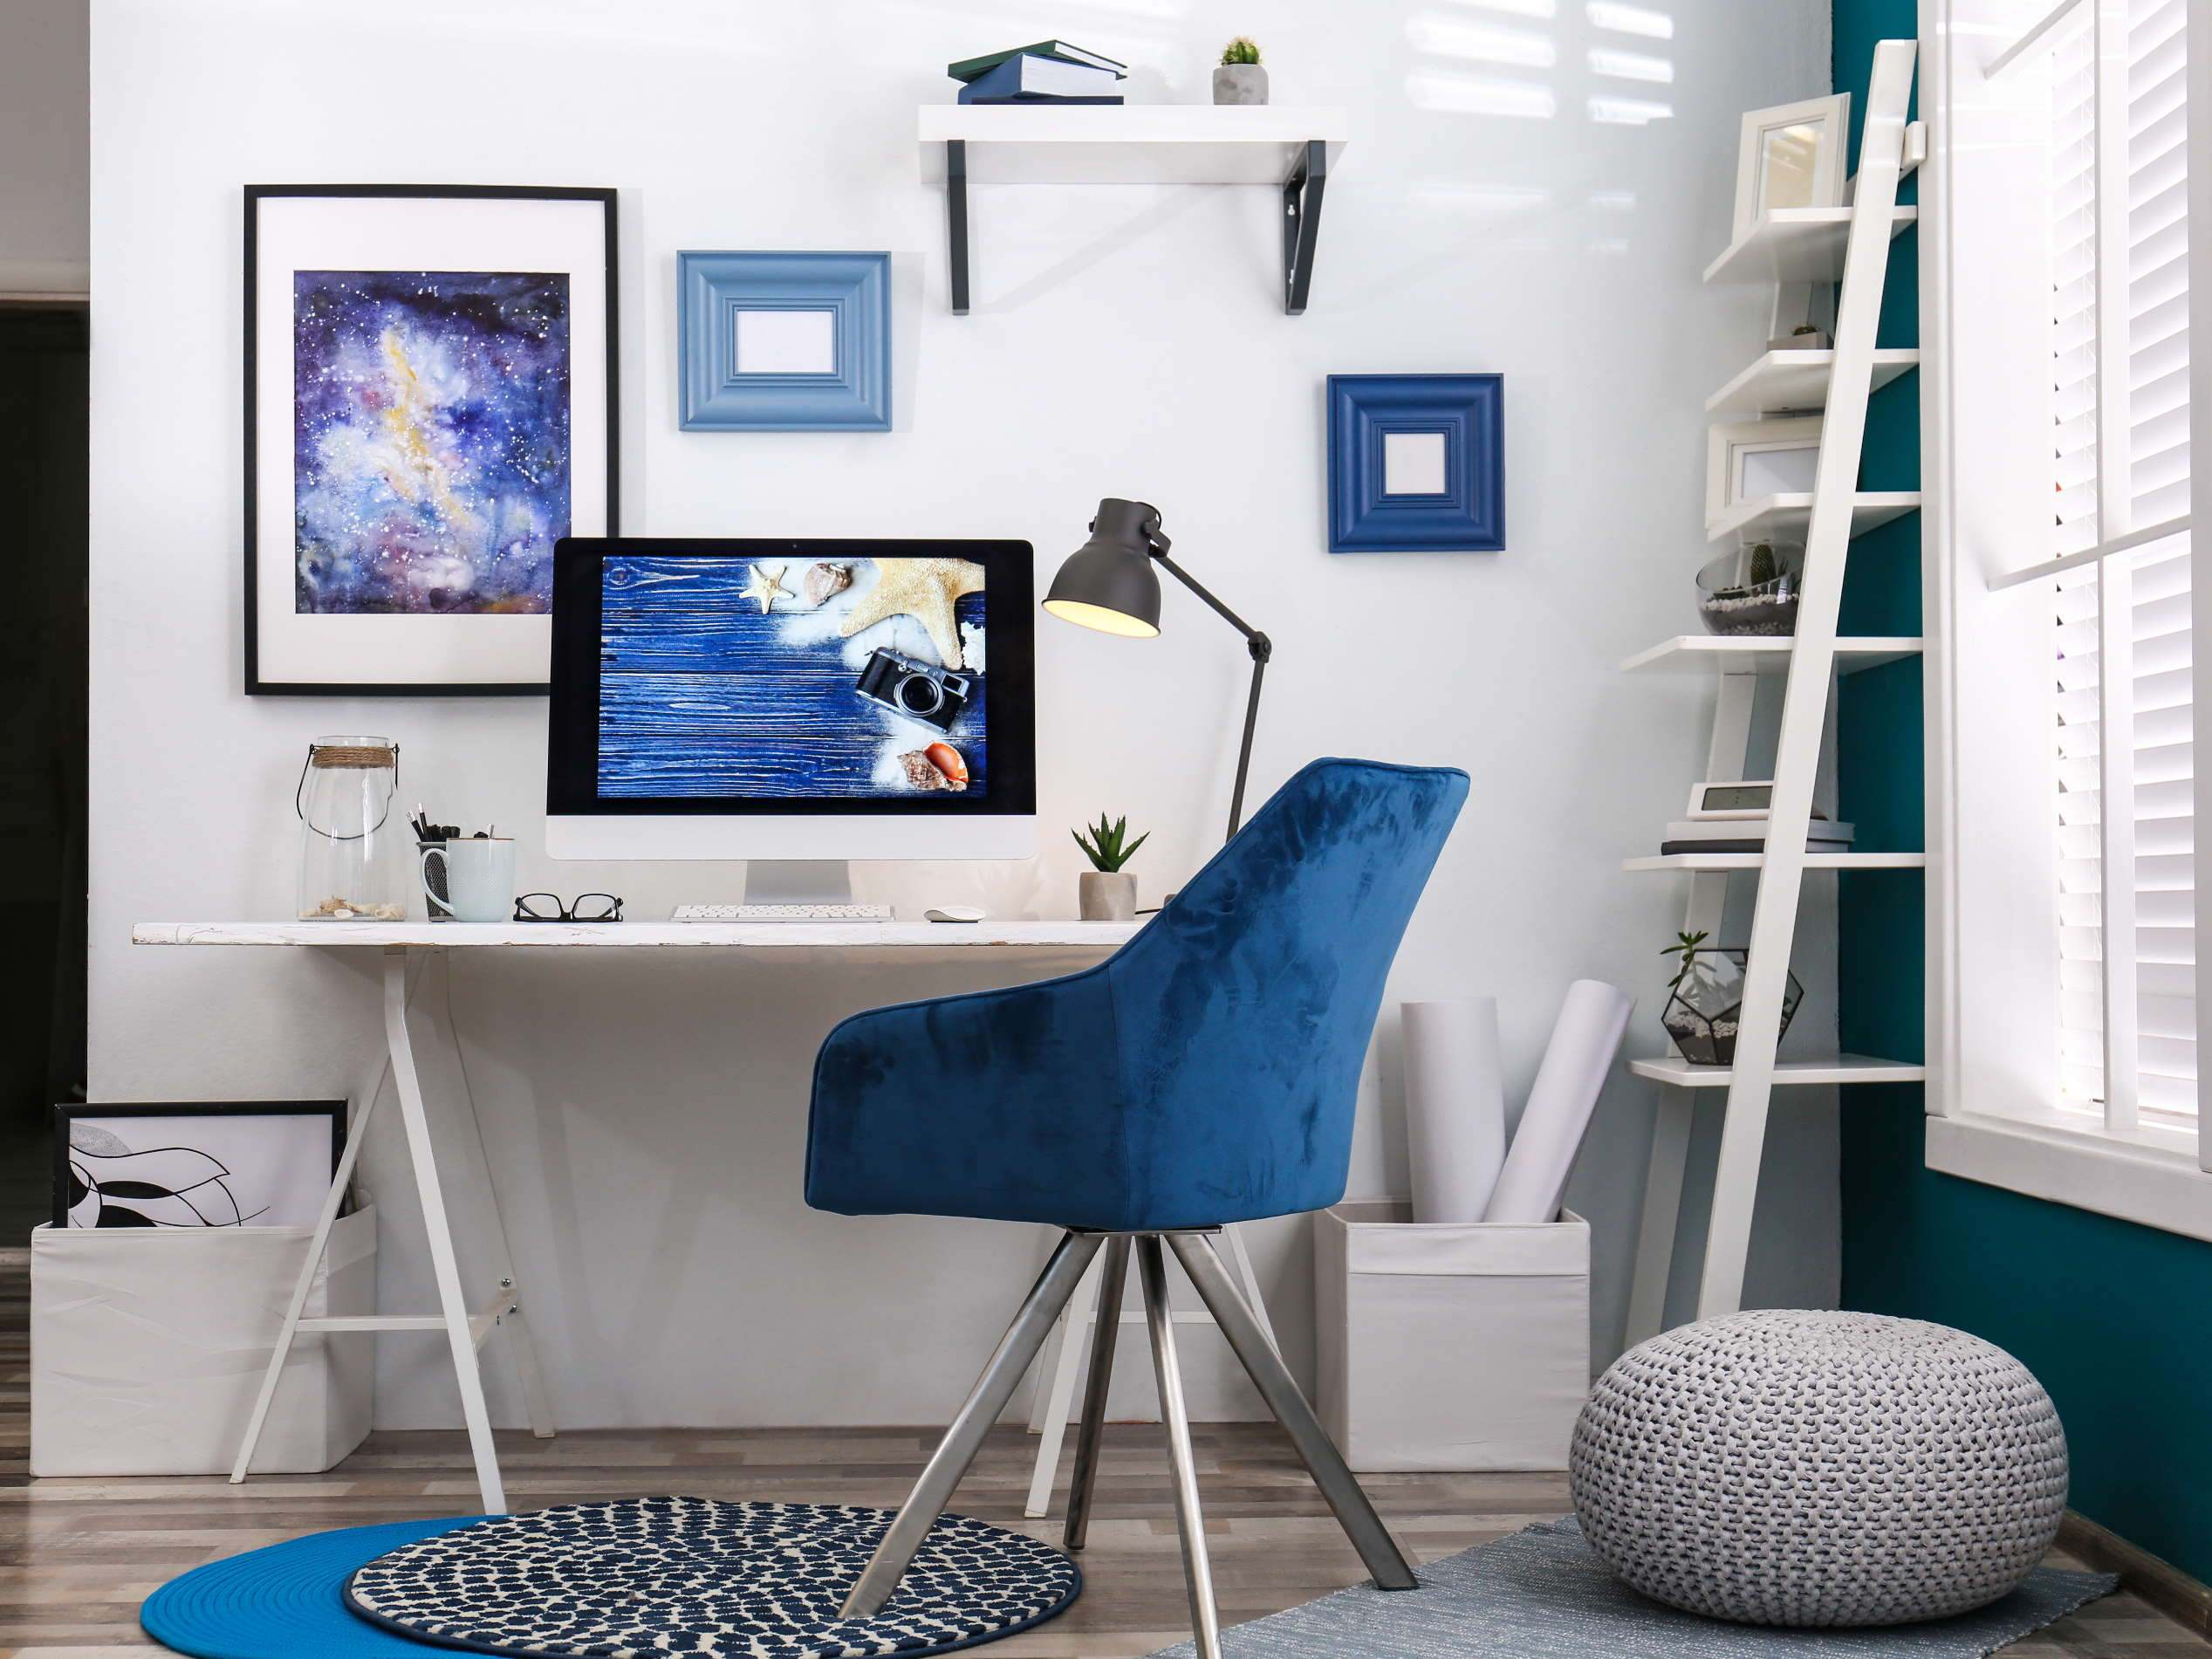 Home office ideas: 5 tips to build your own